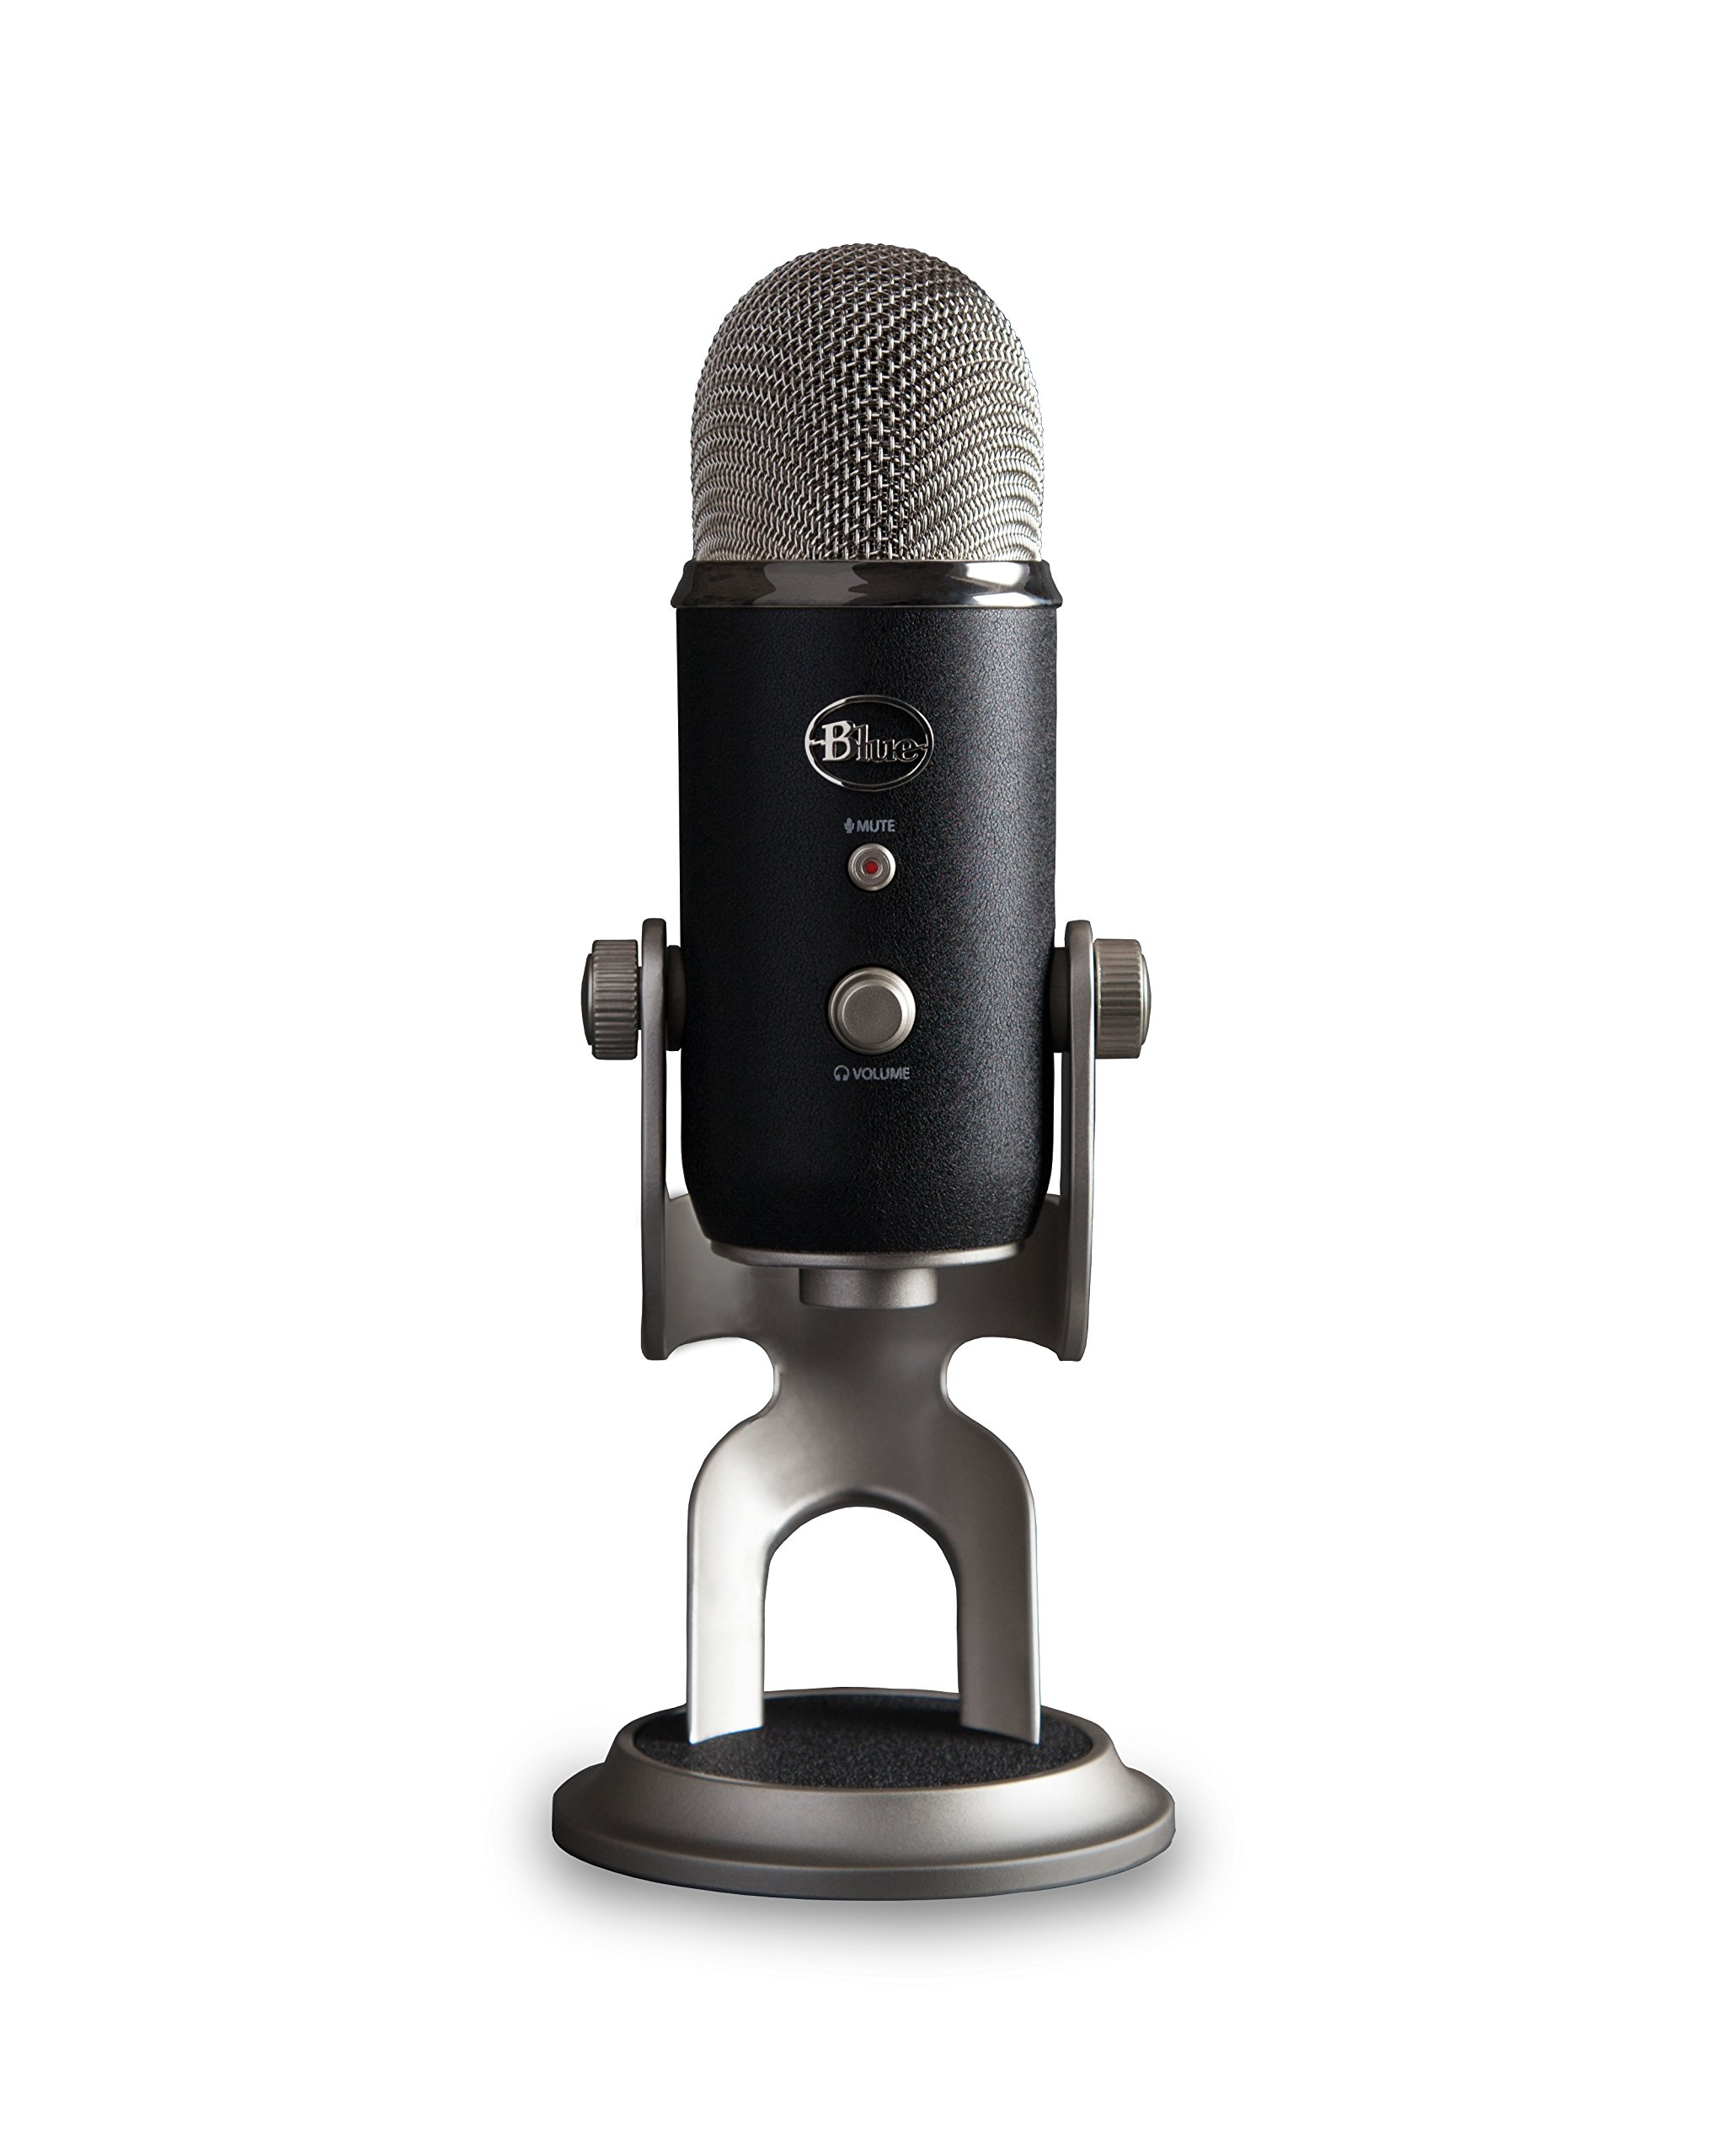 Blue Yeti Pro Studio All-In-One Pro Studio Vocal System with Recording Software by Blue (Image #1)